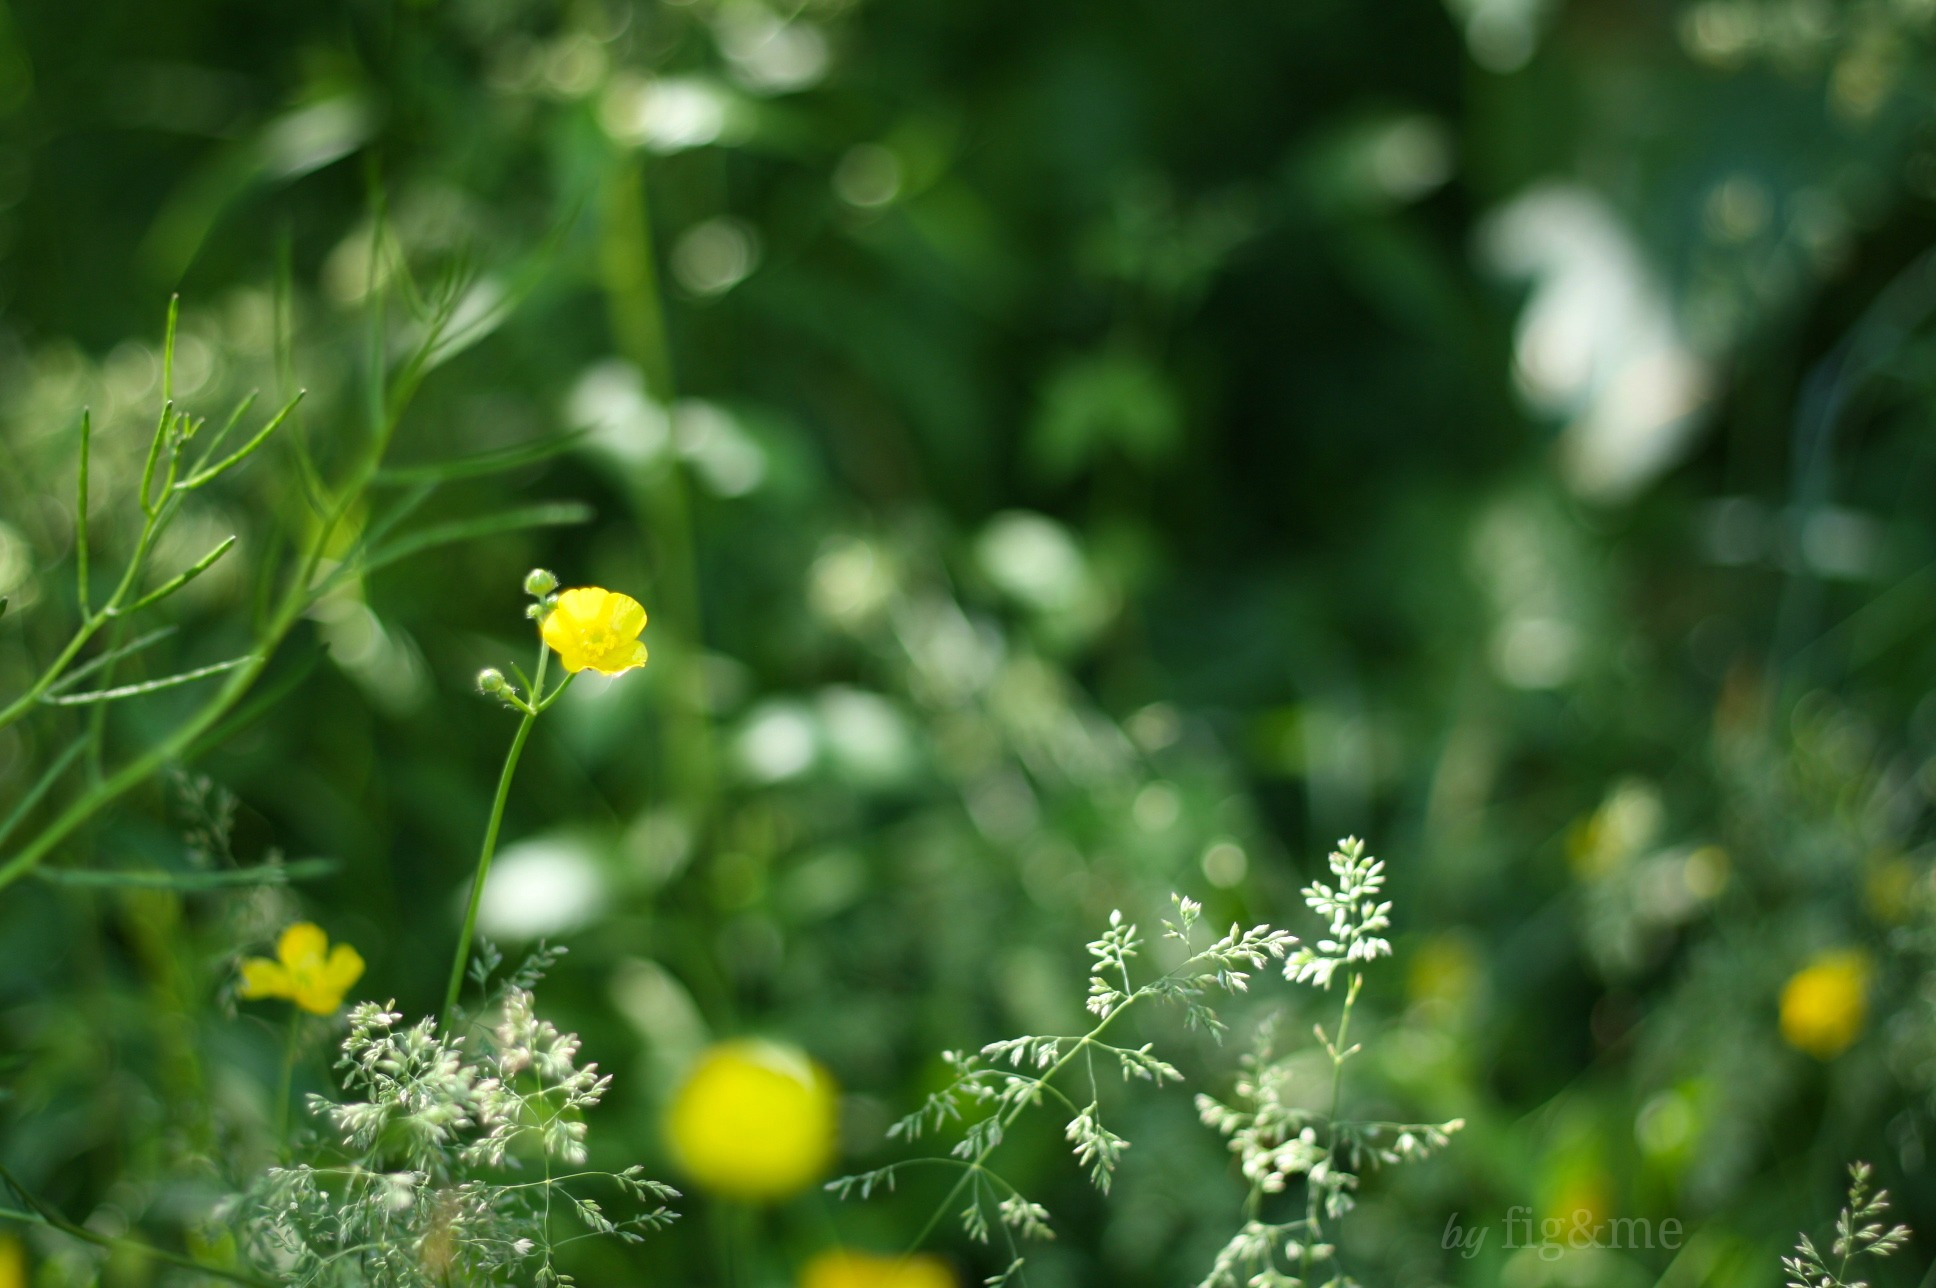 Peppering of buttercups, by fig and me.